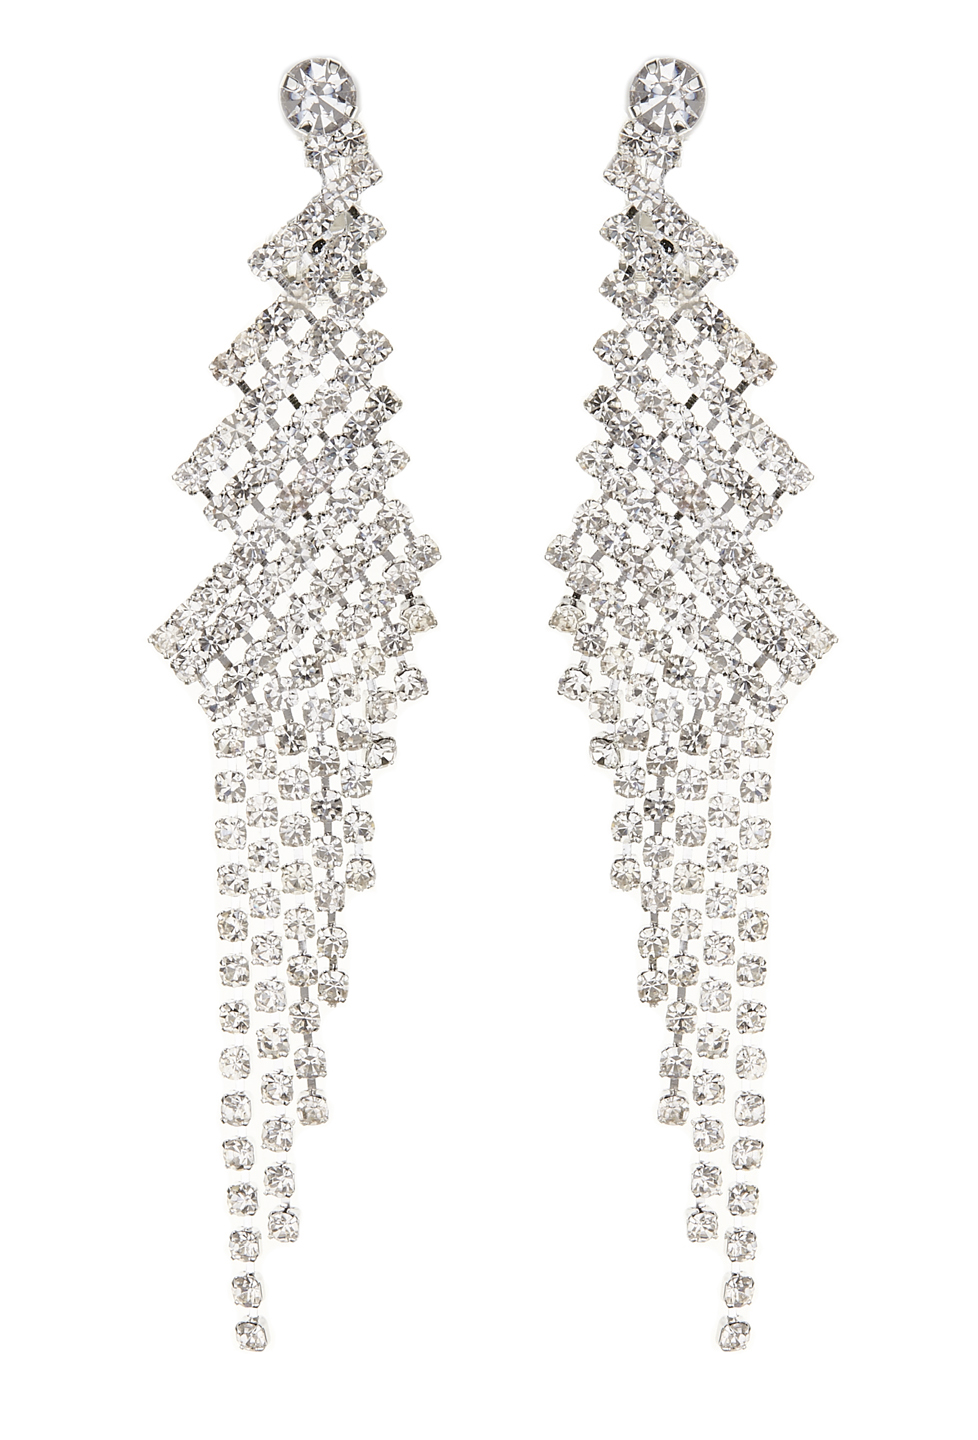 Clip On Earrings - Candra S - silver chandelier earring with clear crystals